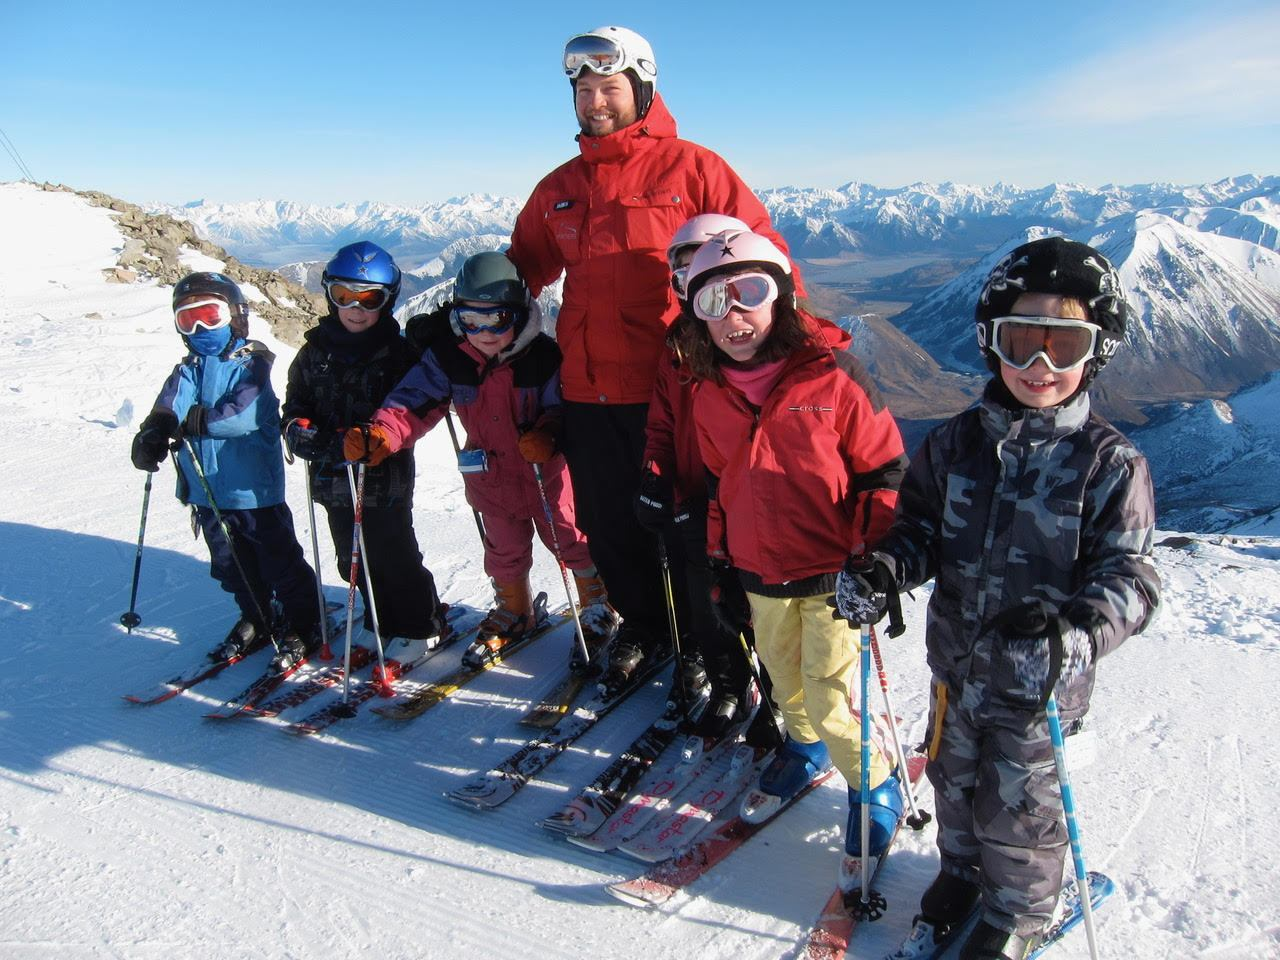 Why Skiing is Good for Kids